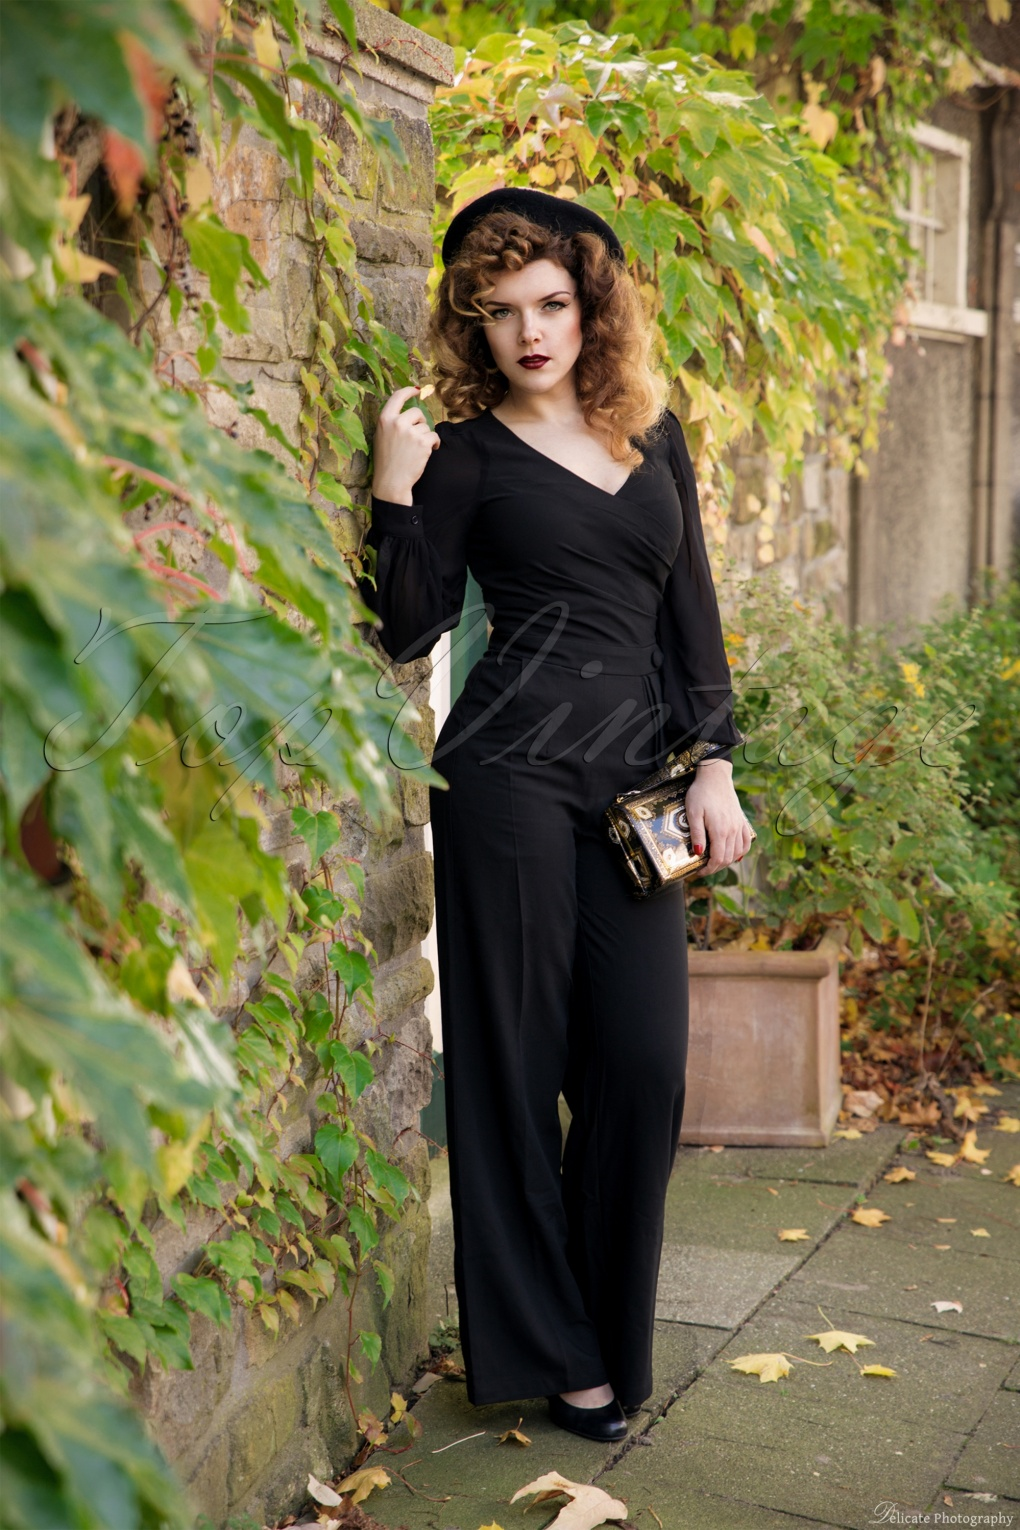 Vintage Overalls 1910s -1950s Pictures and History 40s Rosemary Jumpsuit in Black £62.66 AT vintagedancer.com